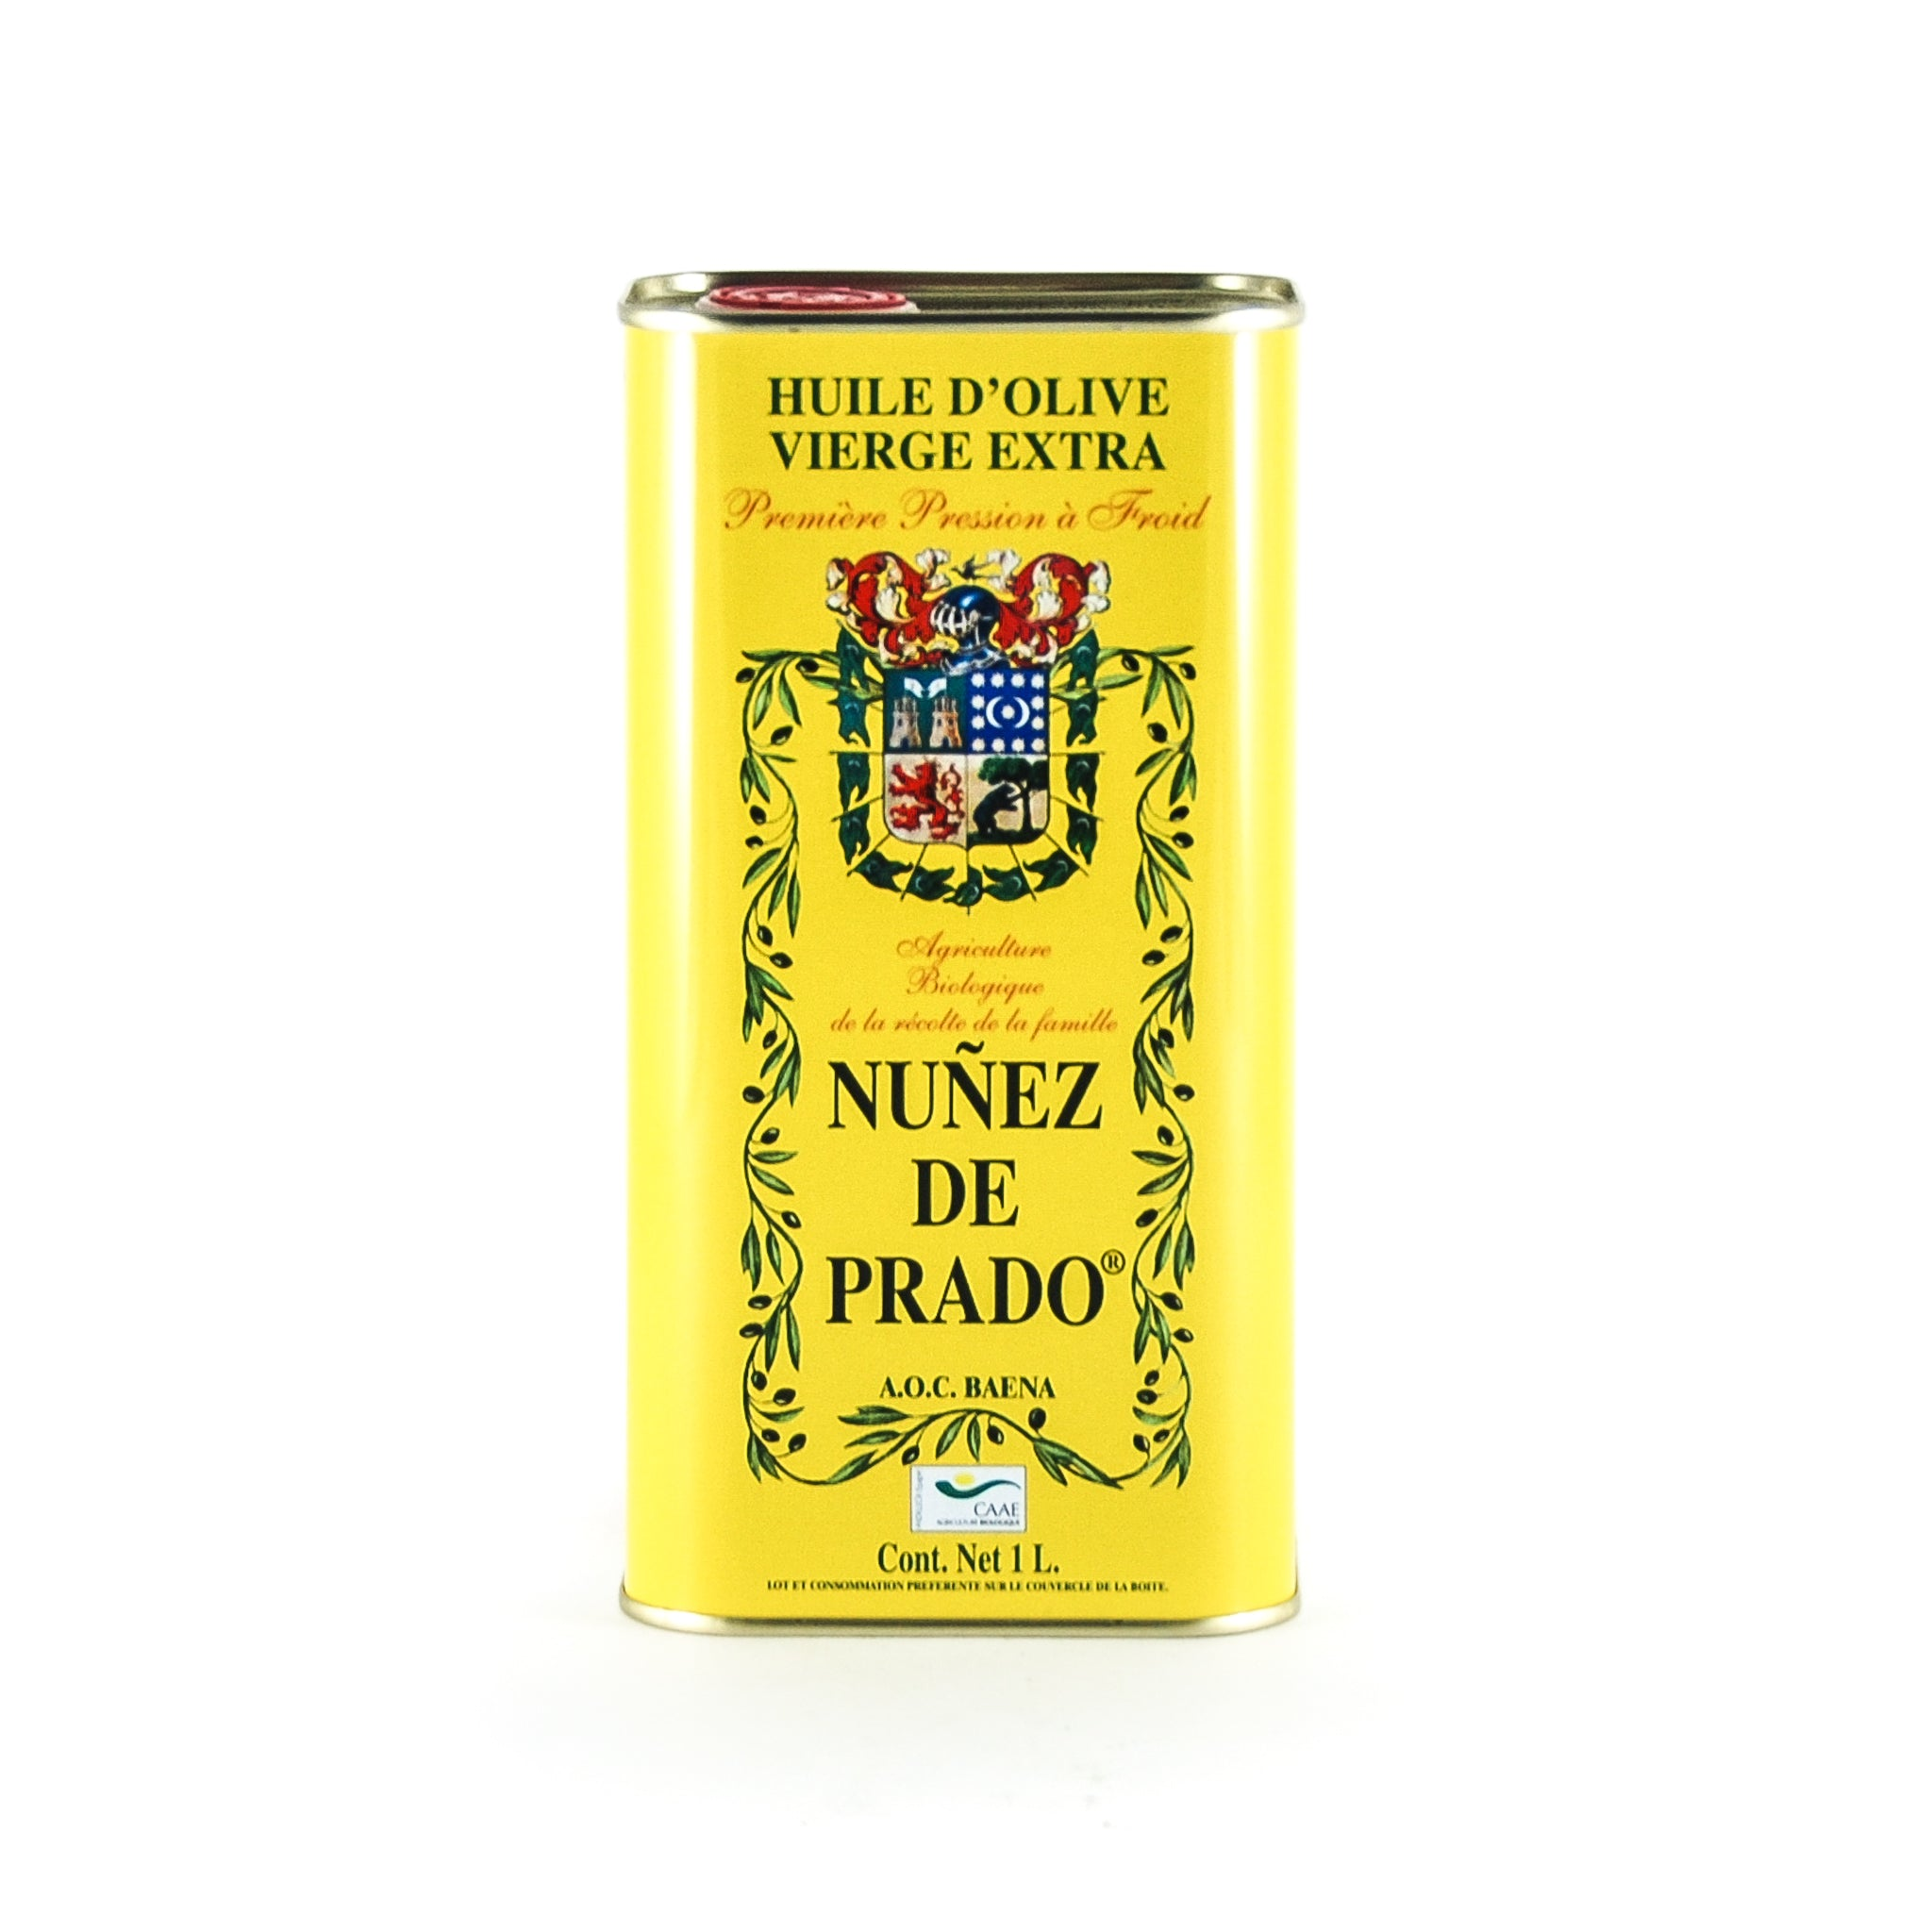 Nunez de Prado Organic Extra Virgin Olive Oil DOP 1 litre Ingredients Oils & Vinegars Spanish Food